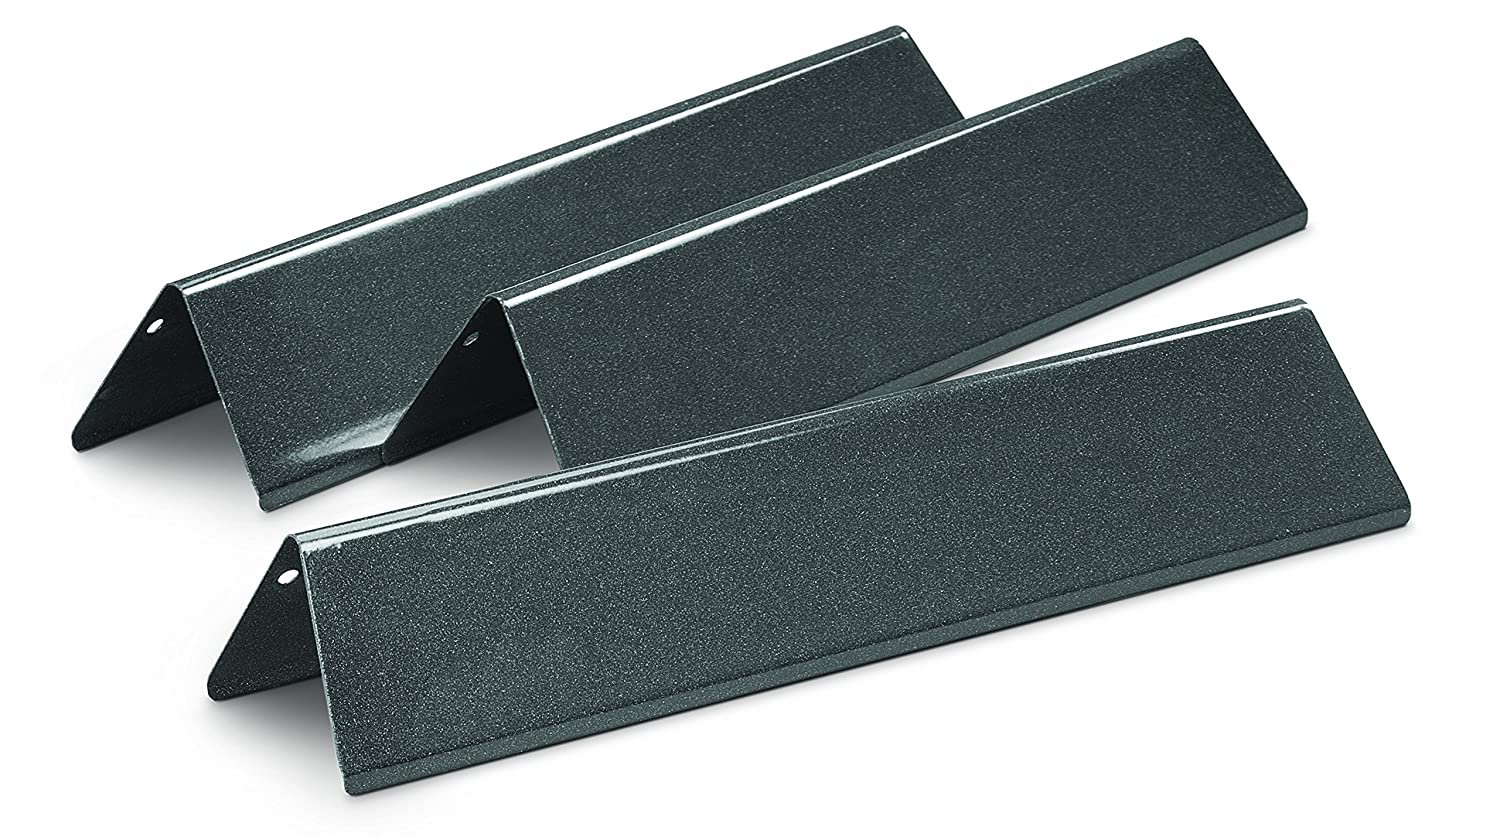 Weber 7635 Porcelain-Enameled Flavorizer Bars for Spirit 200 Series Gas Grills (Set of 3/15.3 x 3.5 x 2.5)